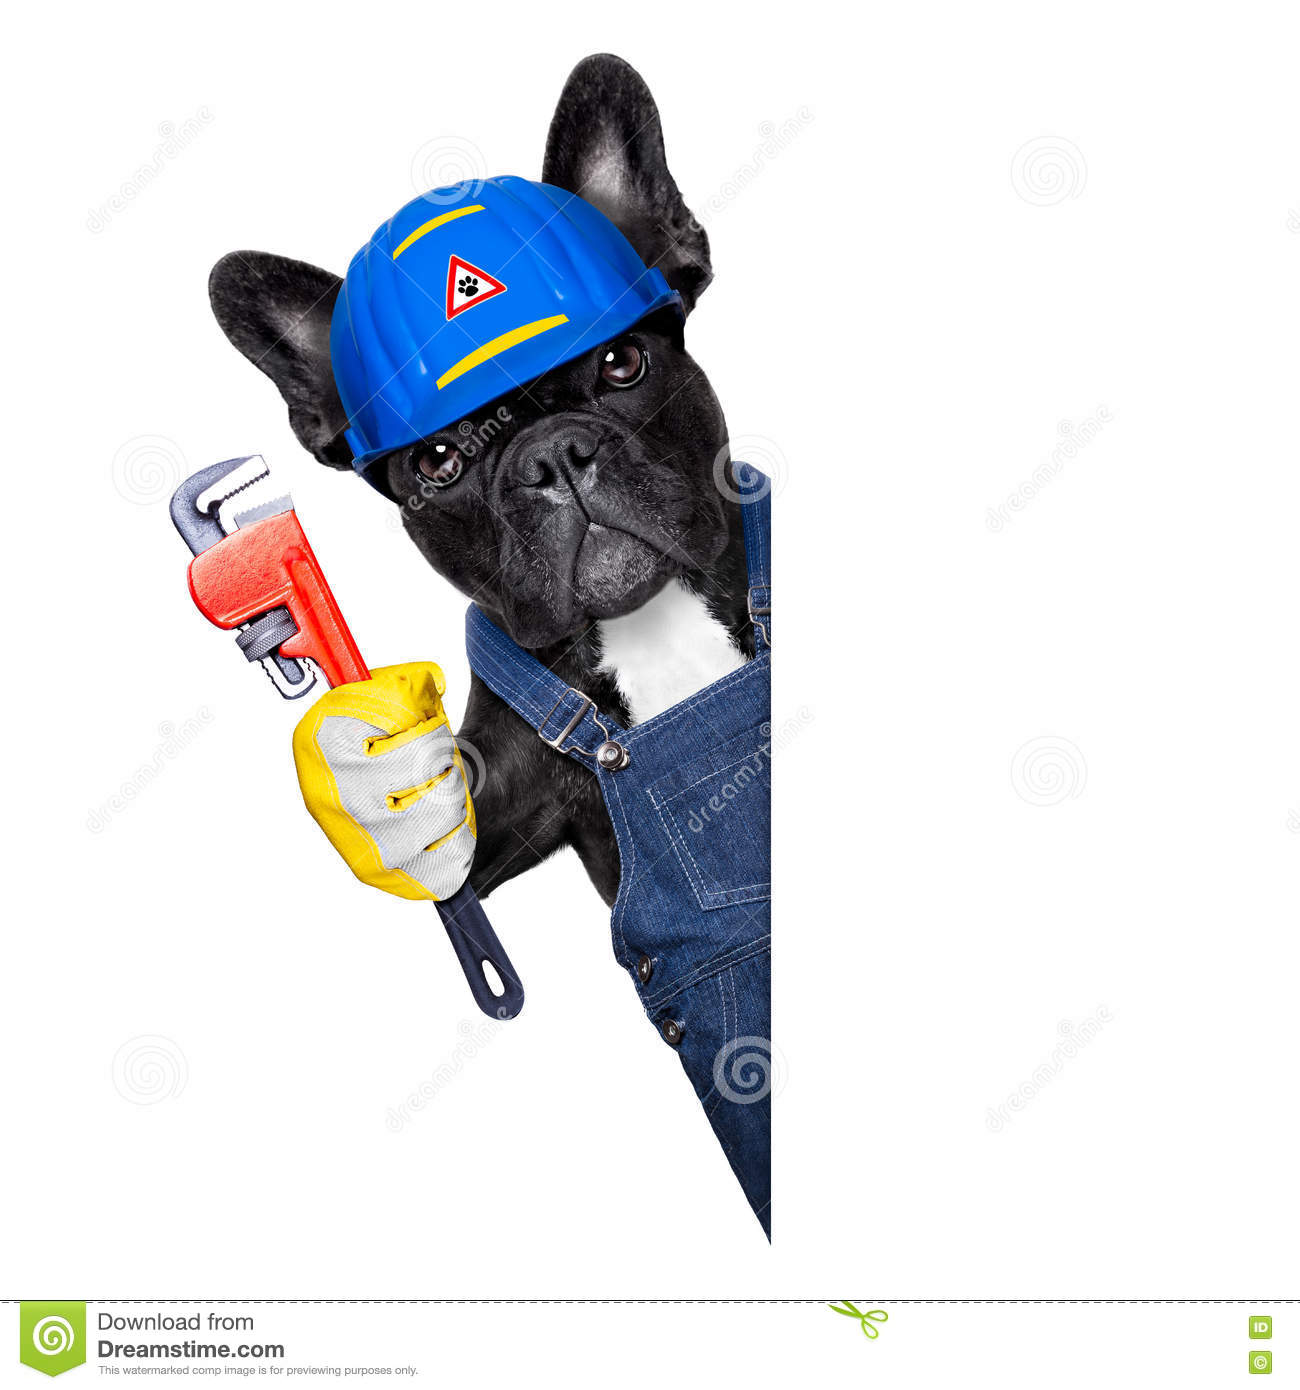 plumber-dog-wrench-handyman-french-bulldog-worker-helmet-paws-ready-to-repair-fix-everything-home-white-76349730.jpg